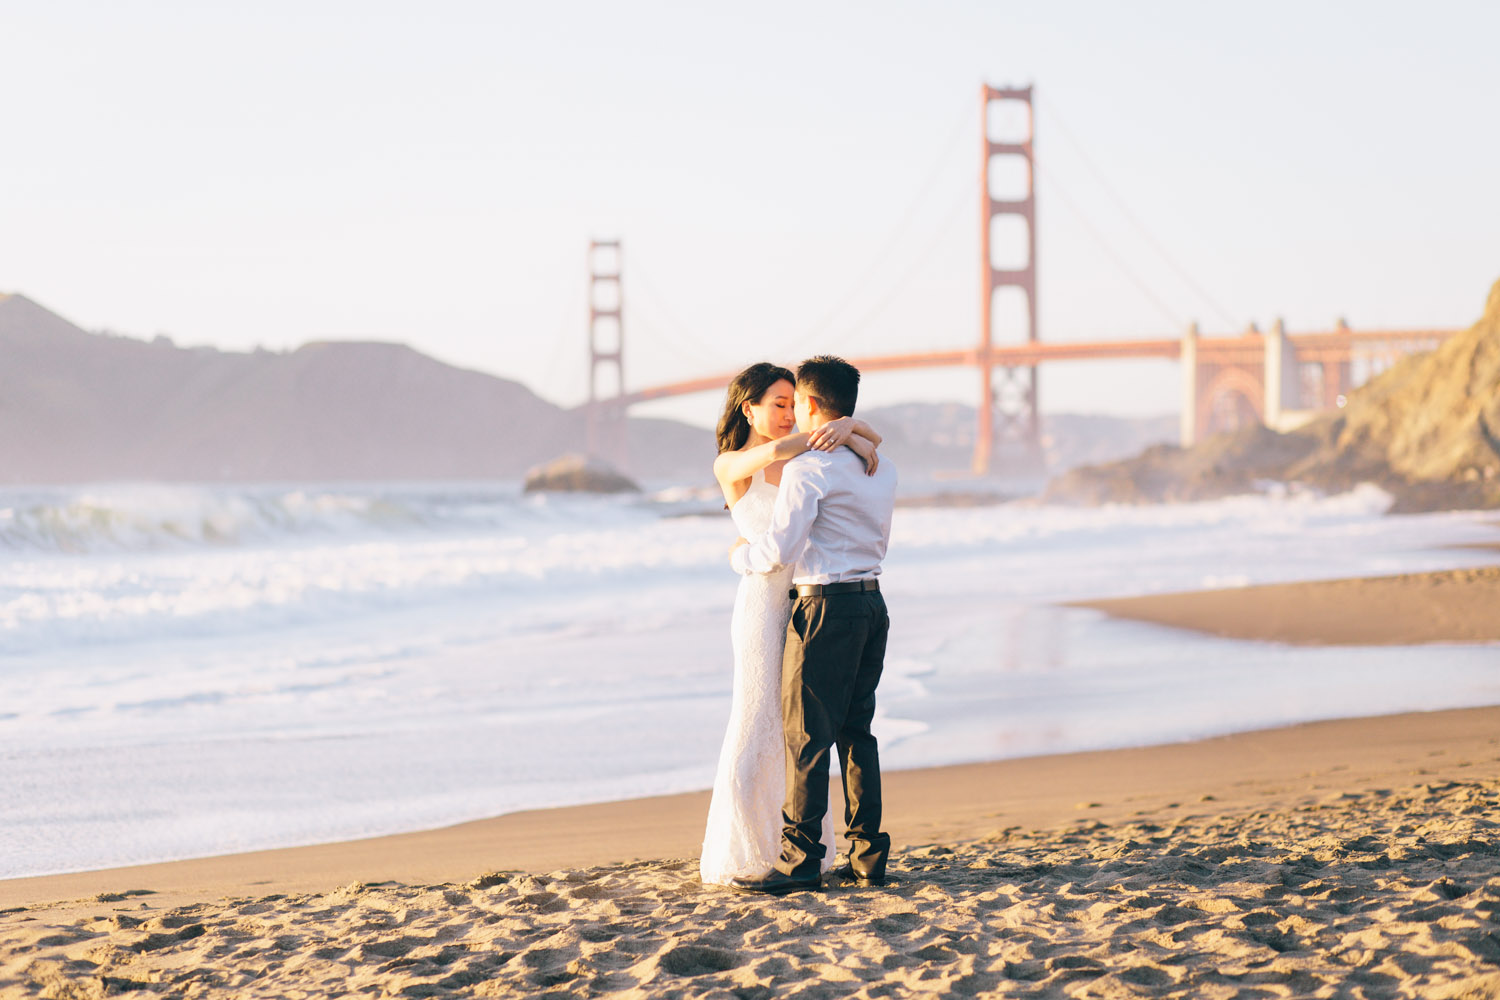 Engagement Session San Francisco Baker Beach Photos by Engagement and Wedding Photographer San Francisco JBJ Pictures-16.jpg